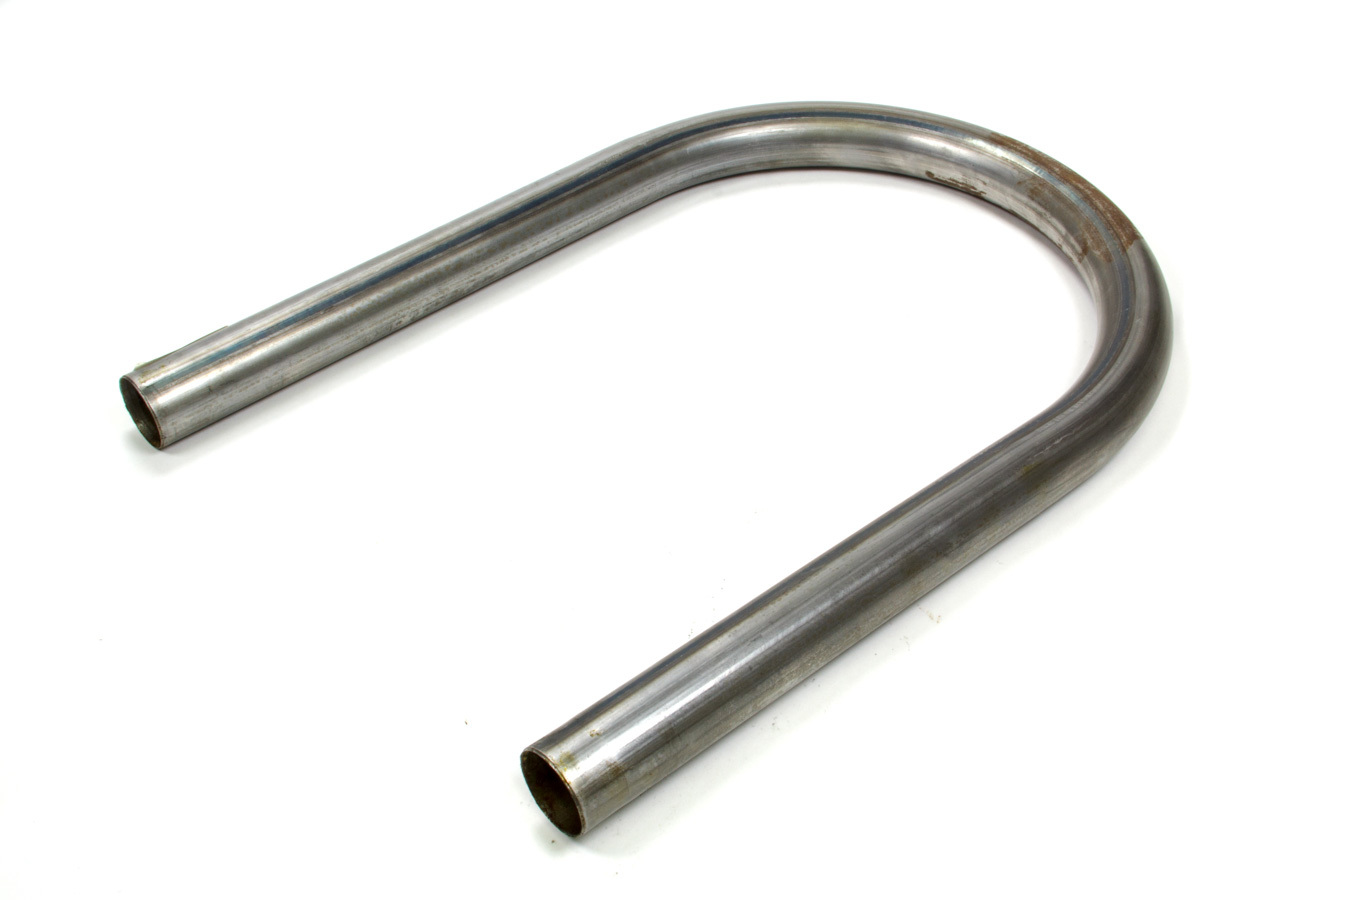 U-Bend Mild Steel 1.500 x 6in Radius 18 Gauge